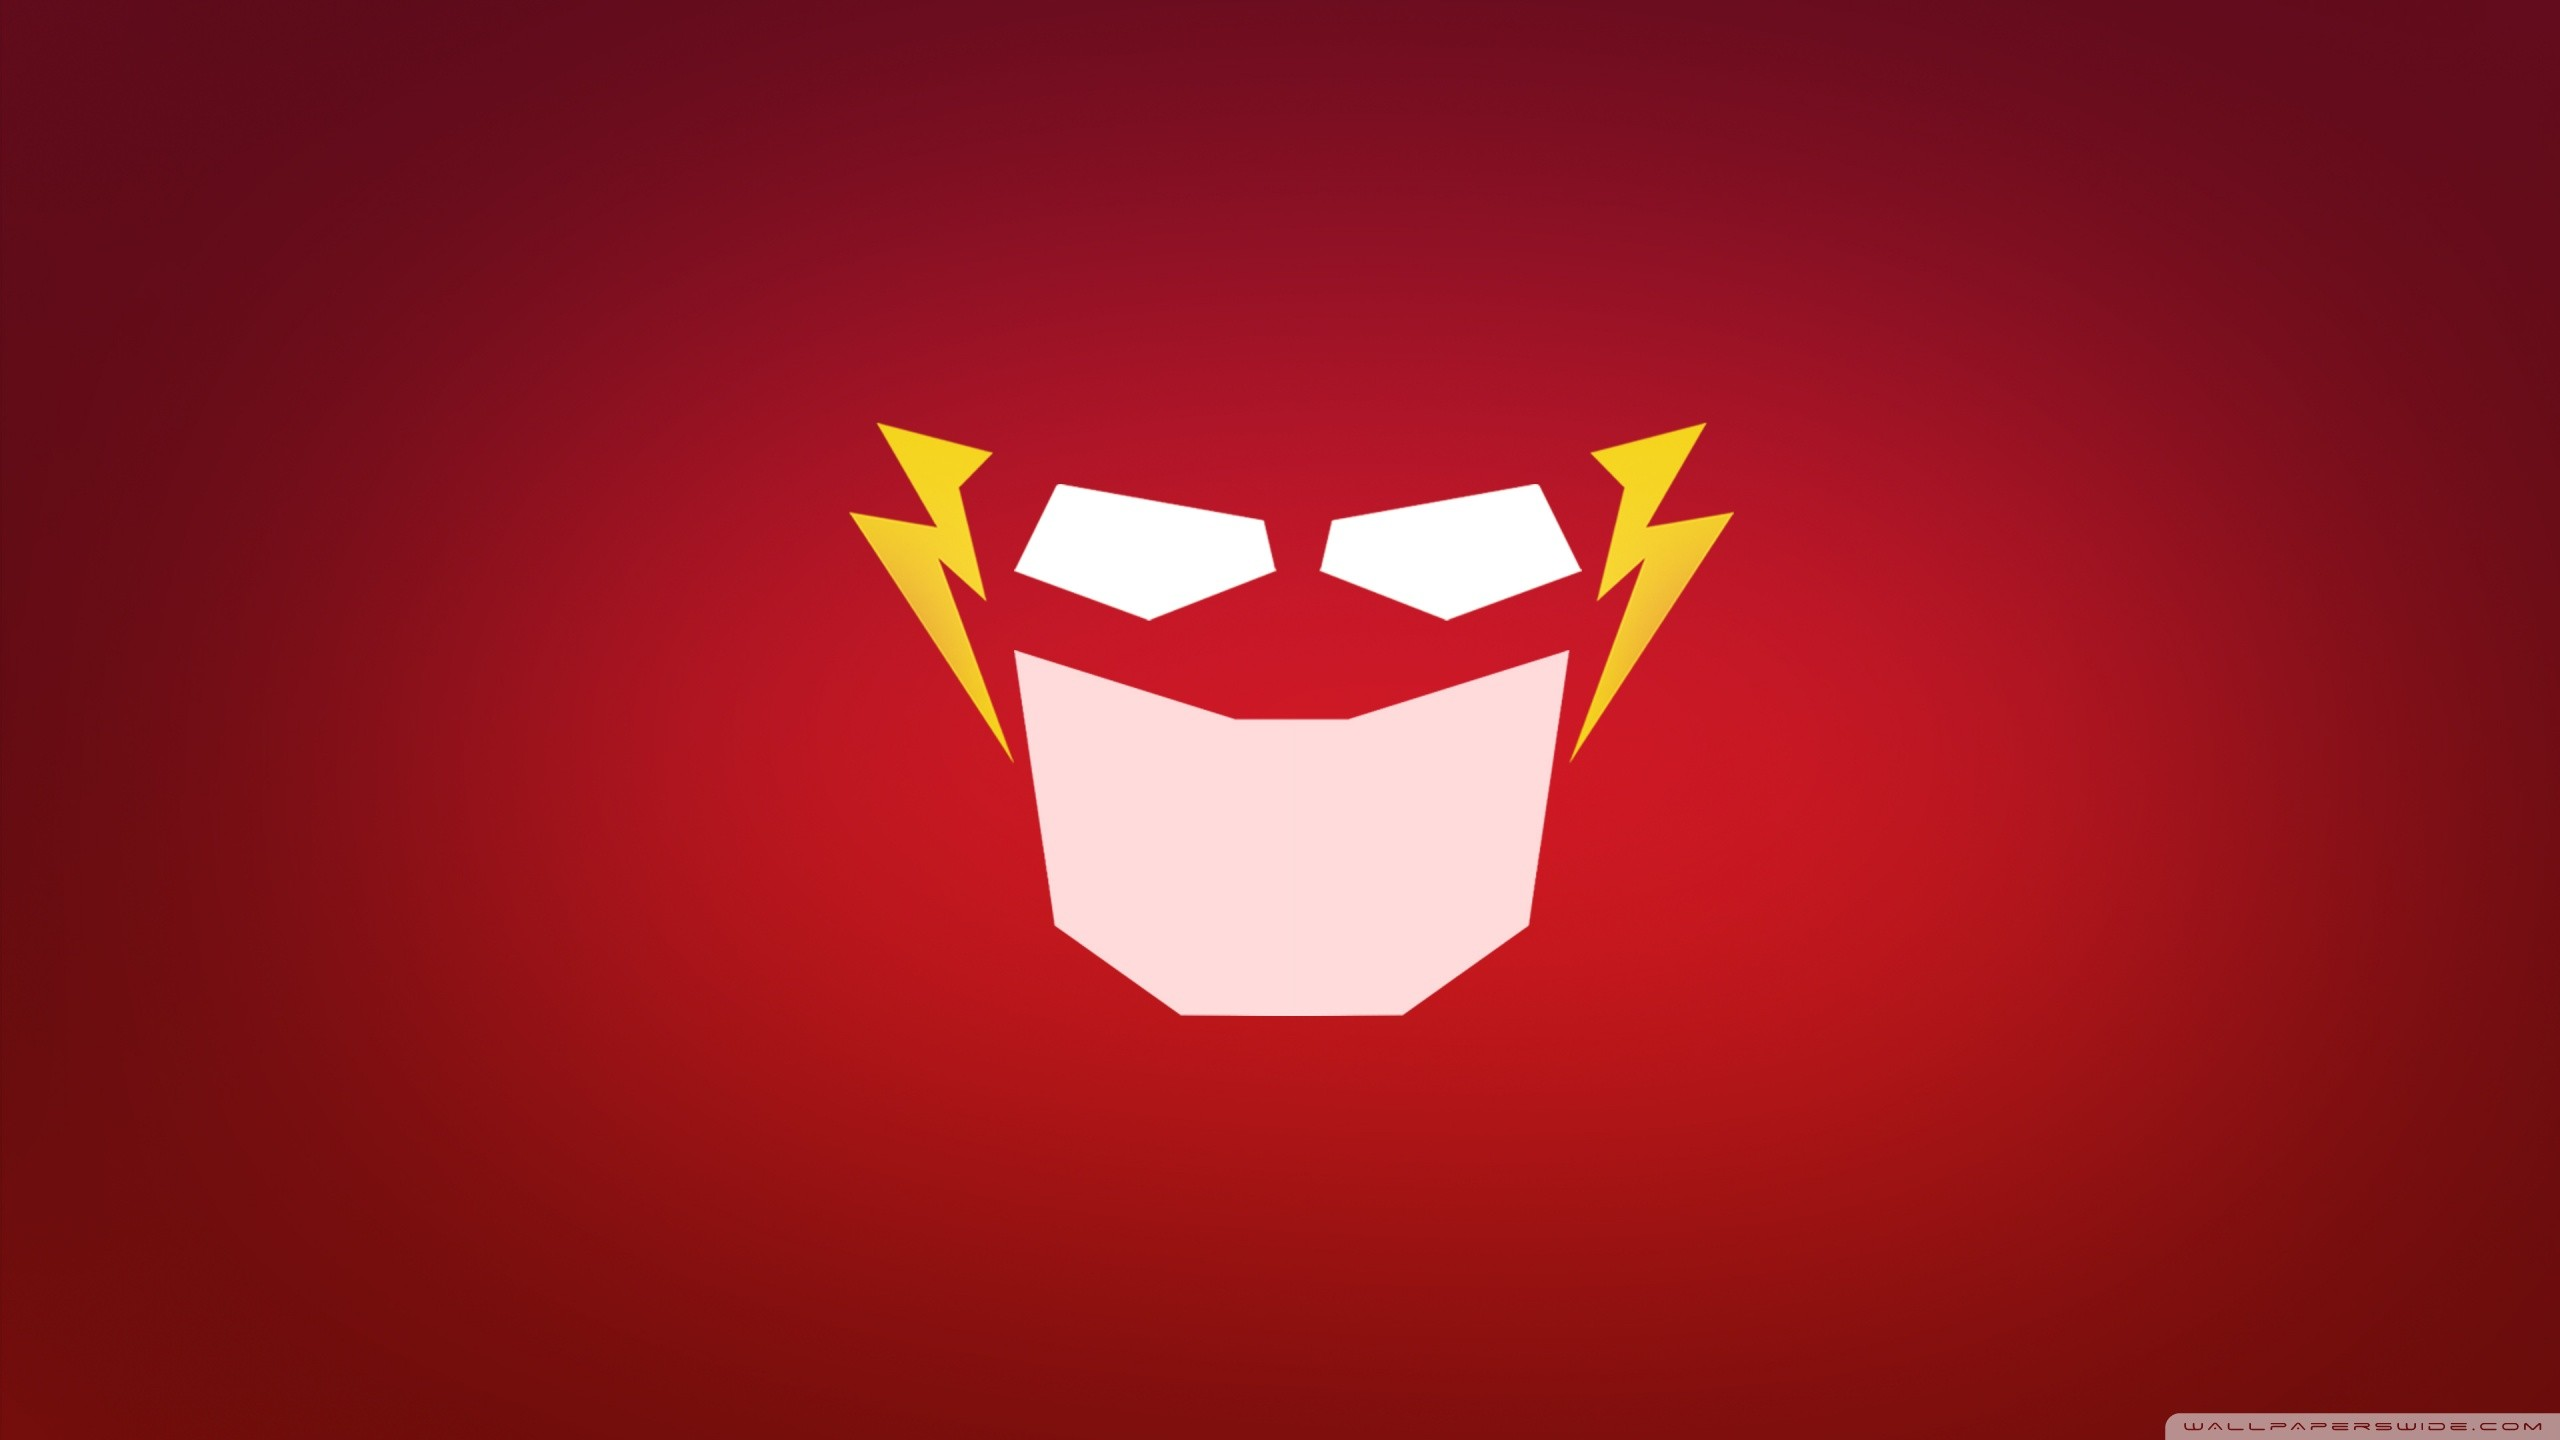 2560x1440 the flash wallpaper hd Download